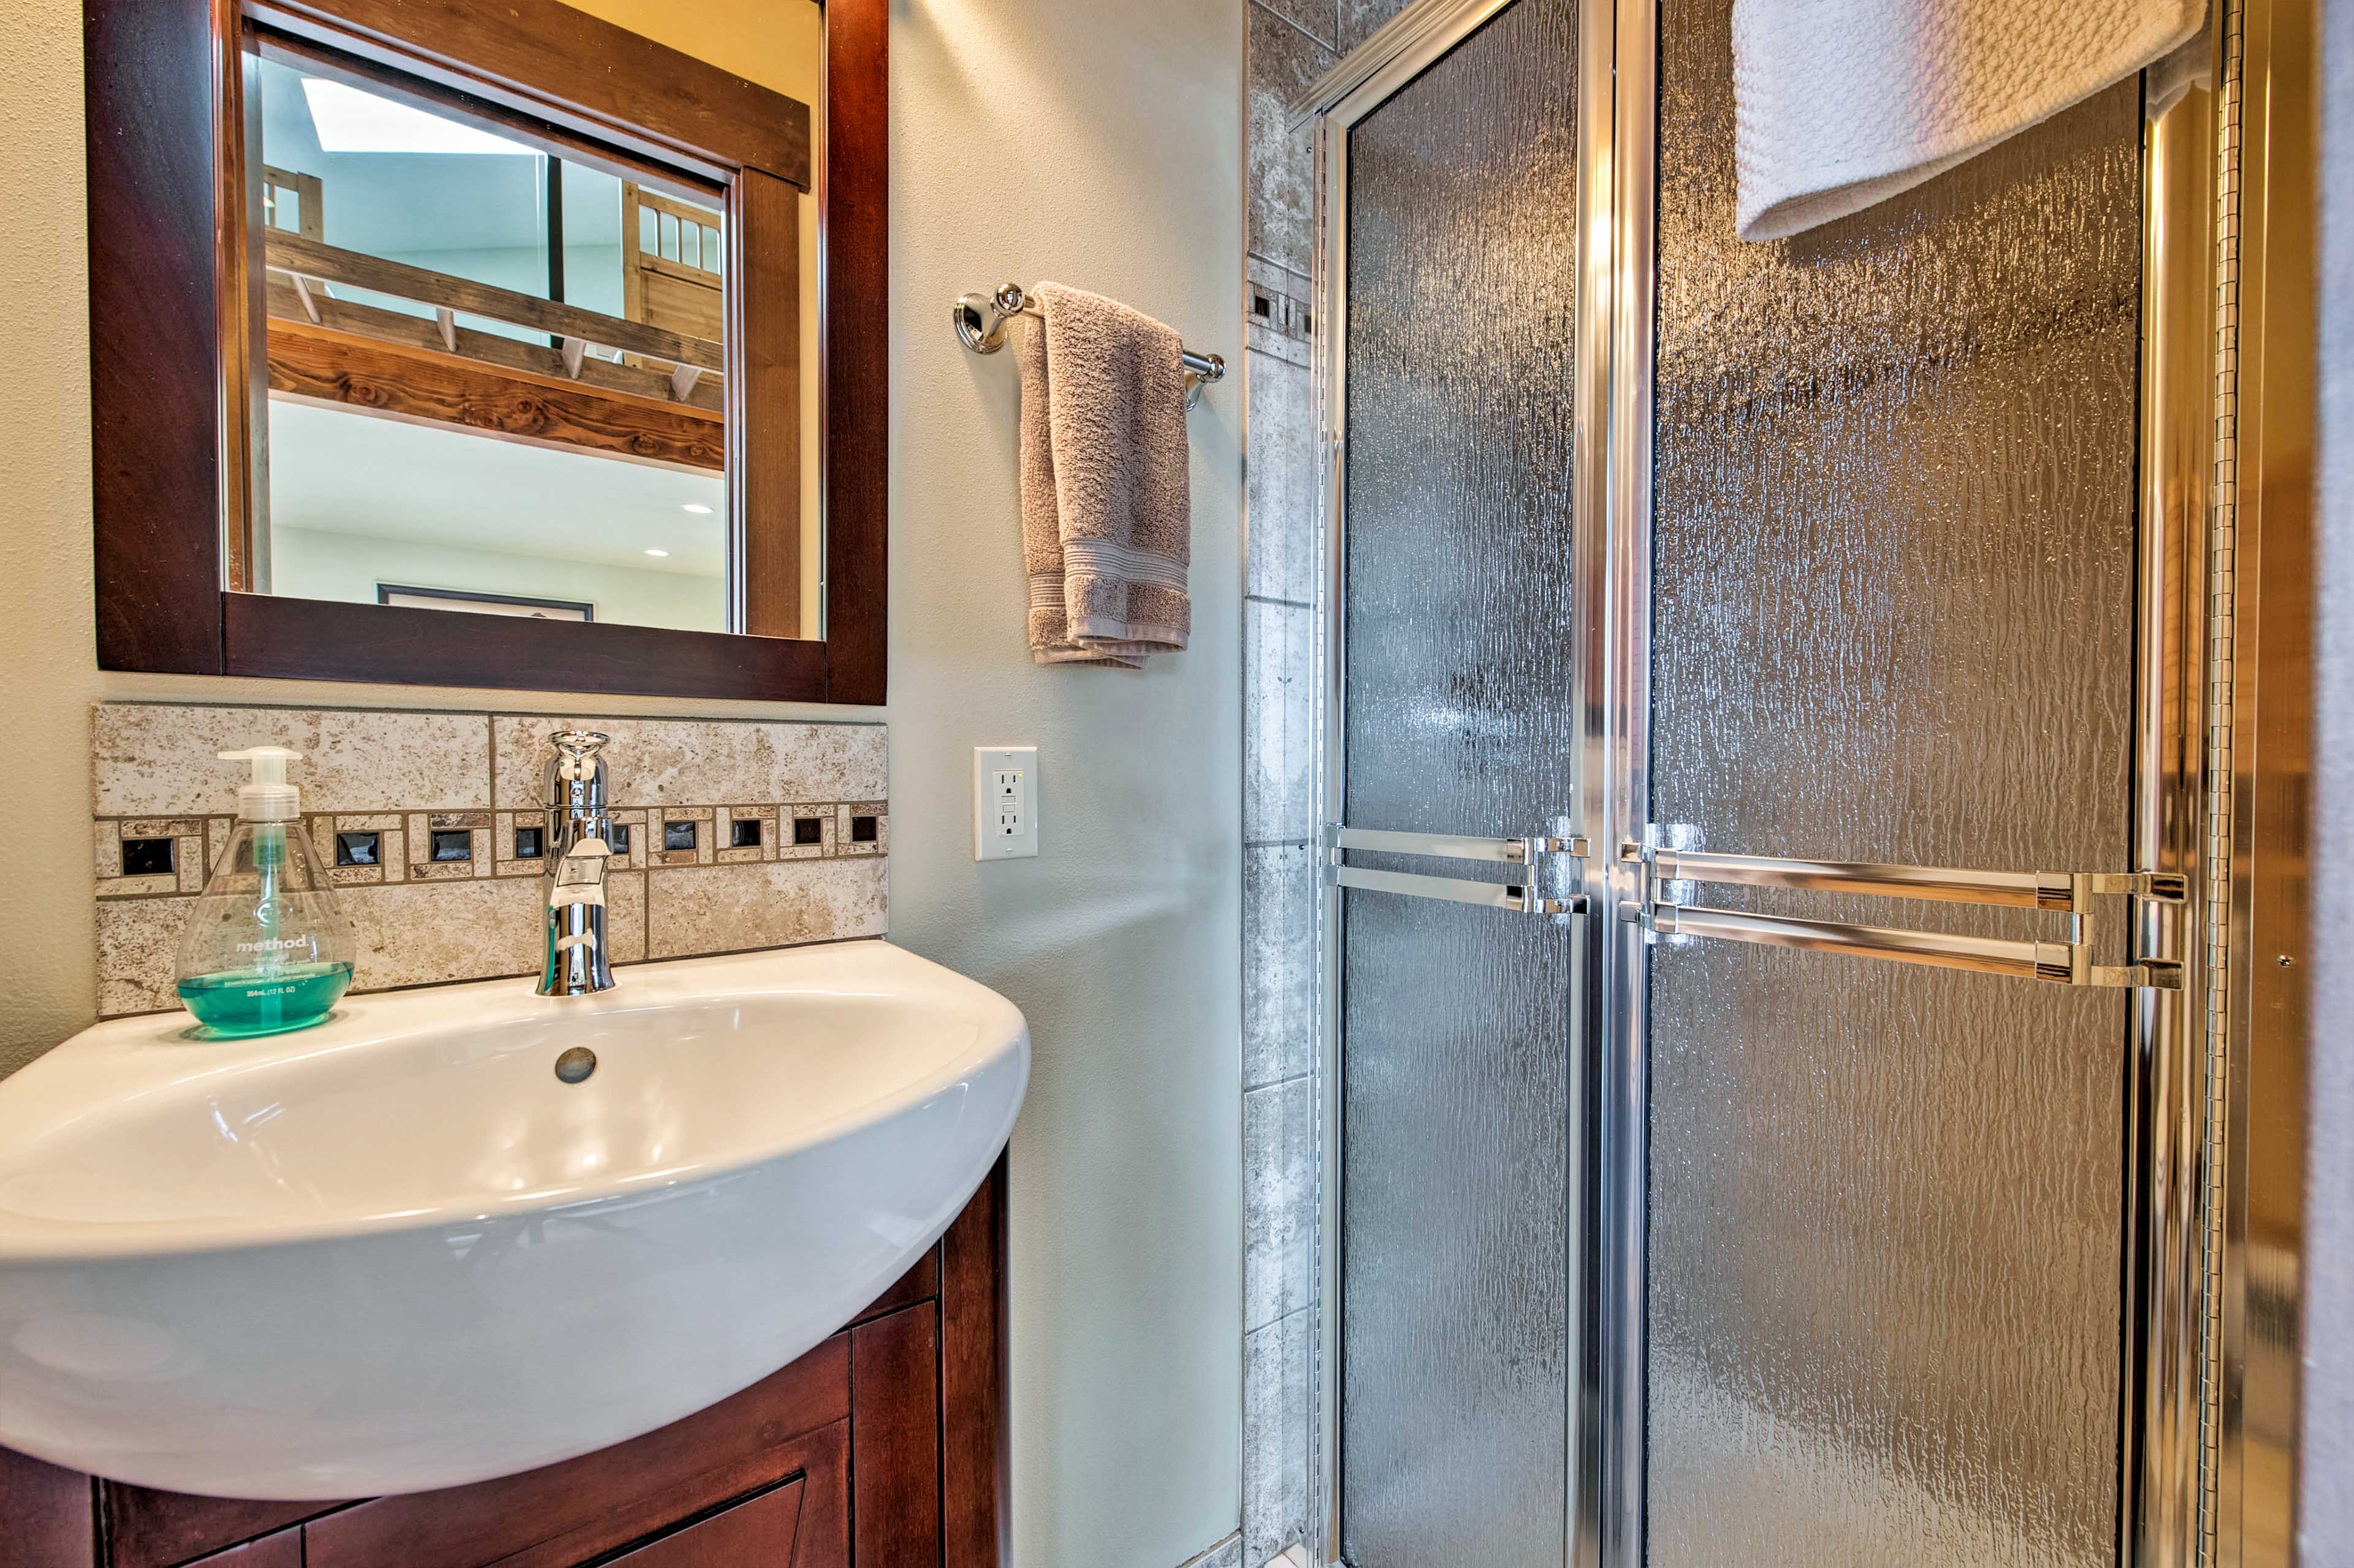 The third full bathroom is located inside the second suite of the house.